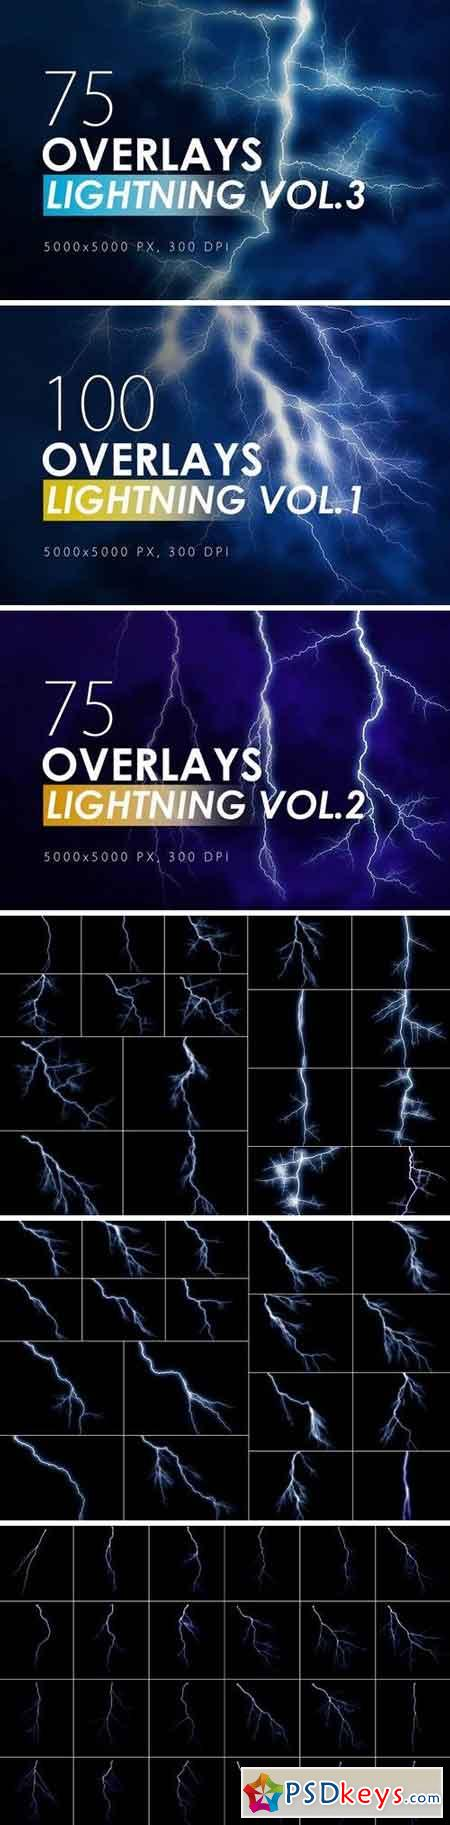 100 Lightning Overlays Bundle